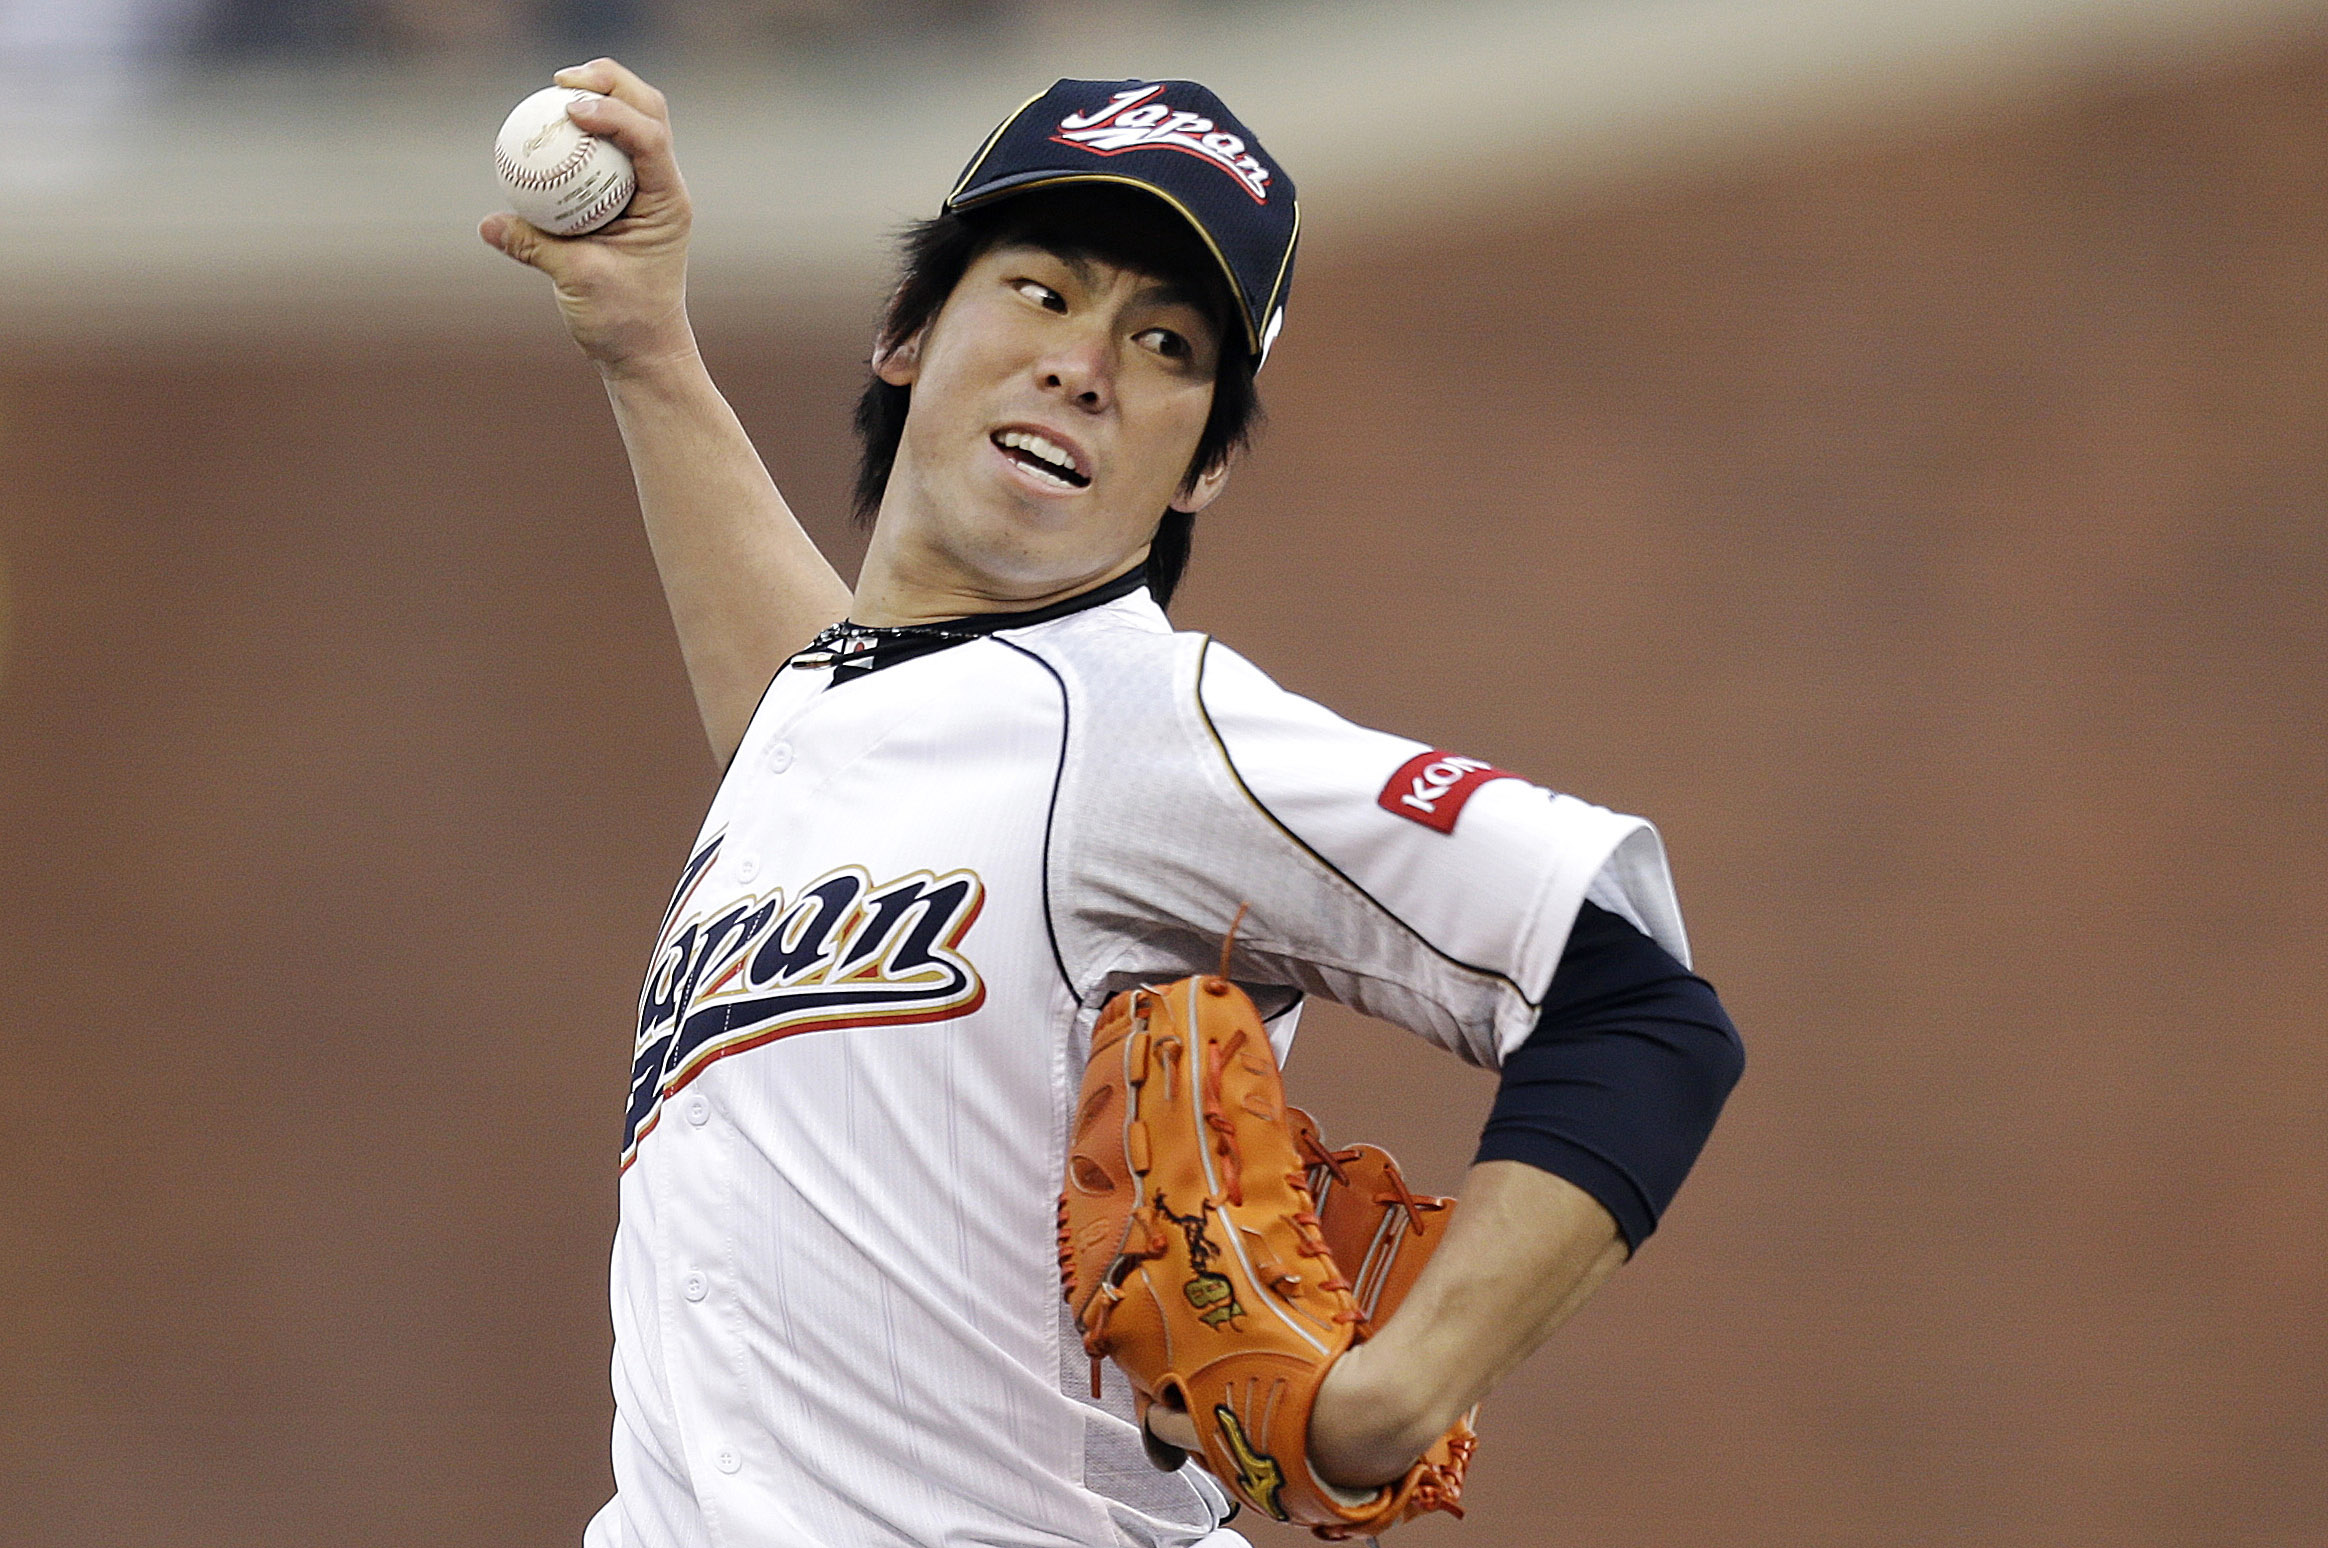 FILE - In this Sunday, March 17, 2013 file photo, Japan's Kenta Maeda pitches during the first inning of a semifinal game of the World Baseball Classic against Puerto Rico in San Francisco. The Dodgers are set to announce the signing of free-agent Japanes